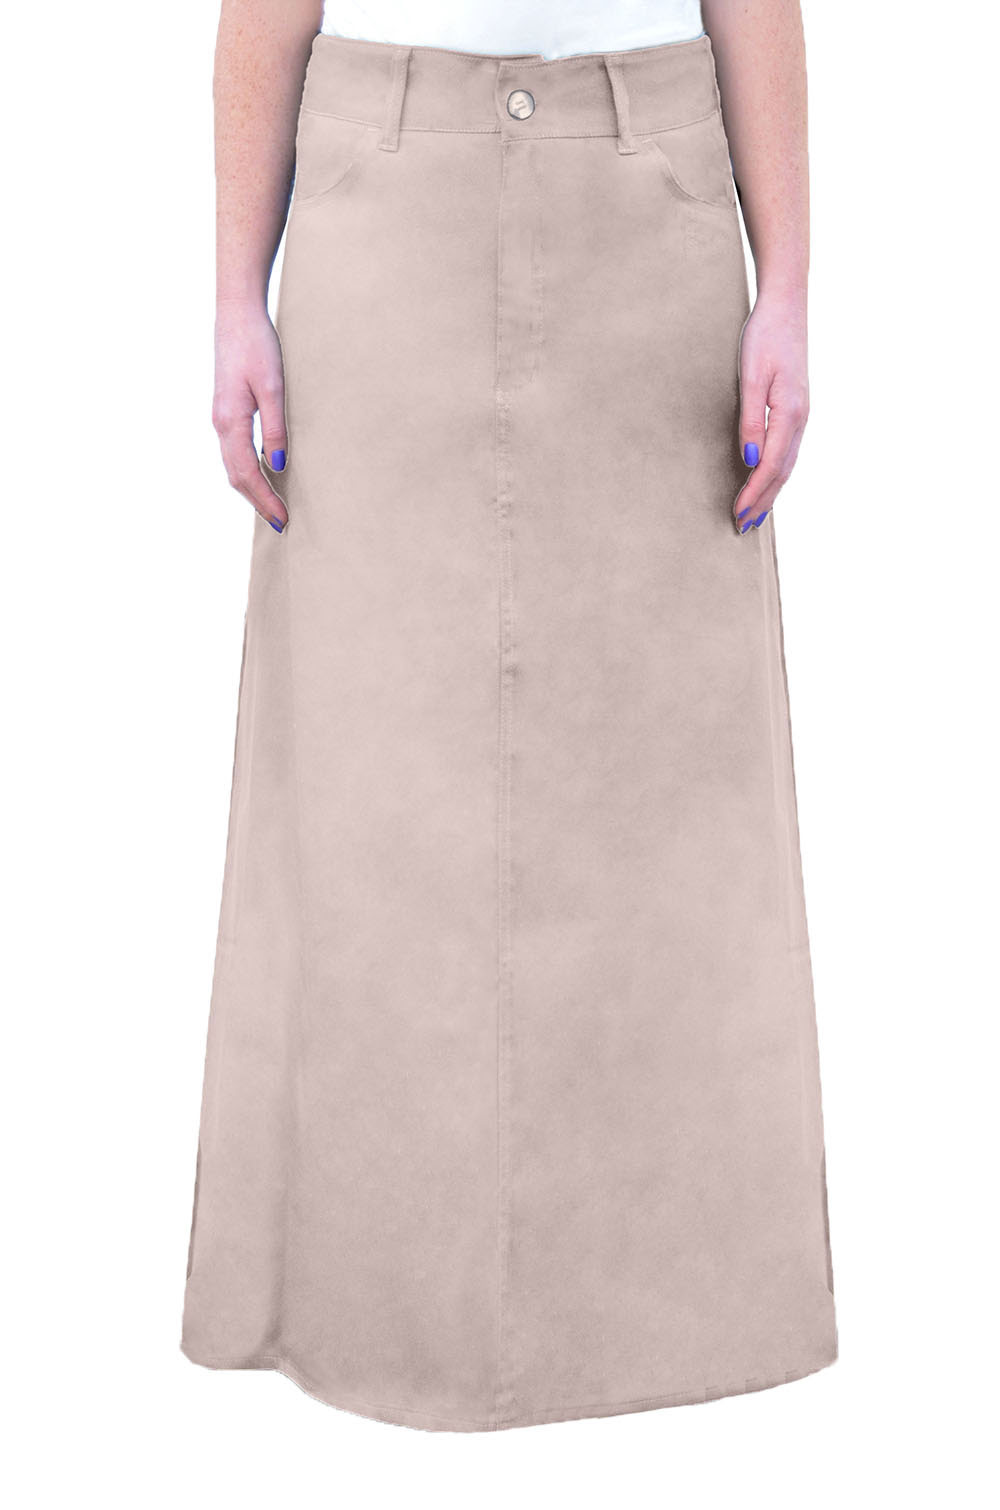 Modest Skirts for Women - Long and Knee Length Skirts